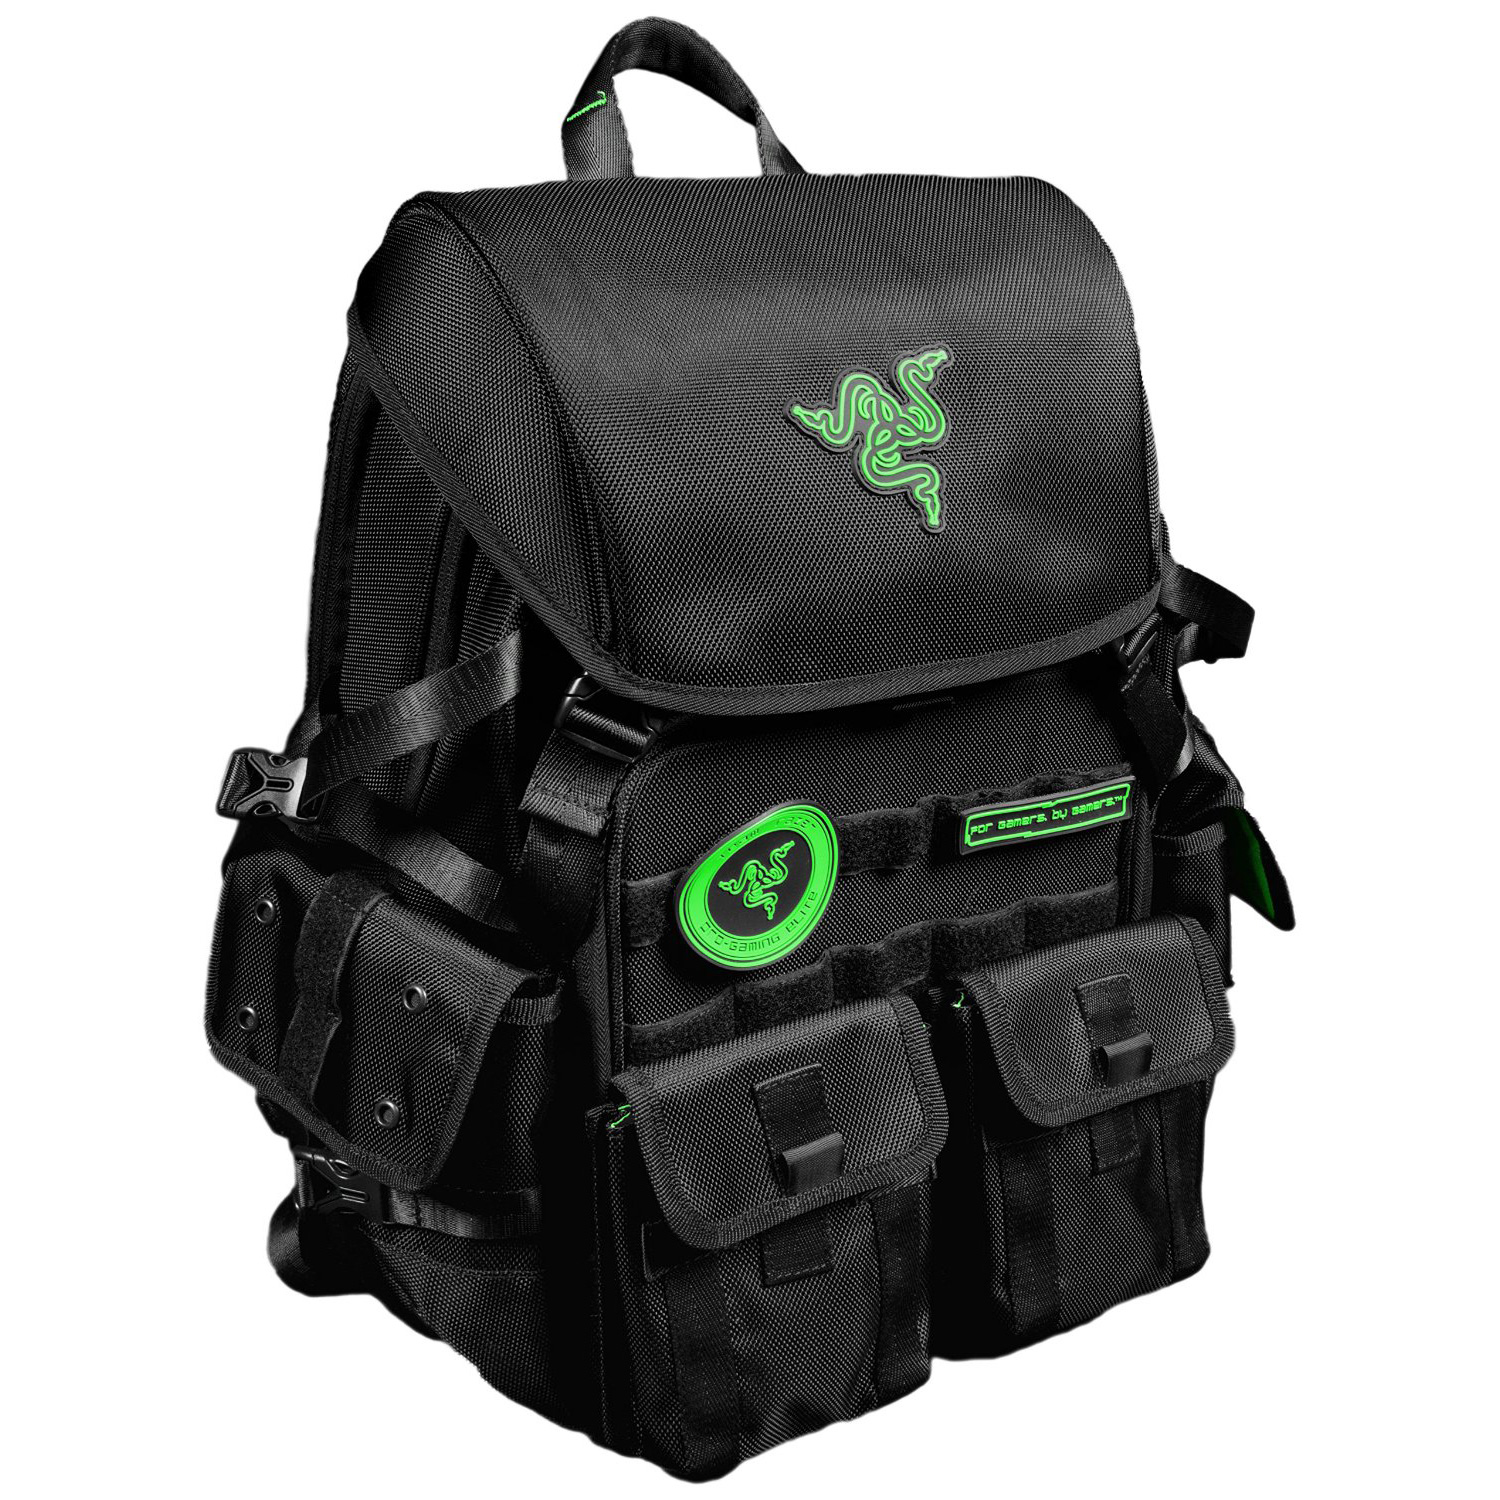 razer tactical pro backpack sac sacoche housse razer sur. Black Bedroom Furniture Sets. Home Design Ideas